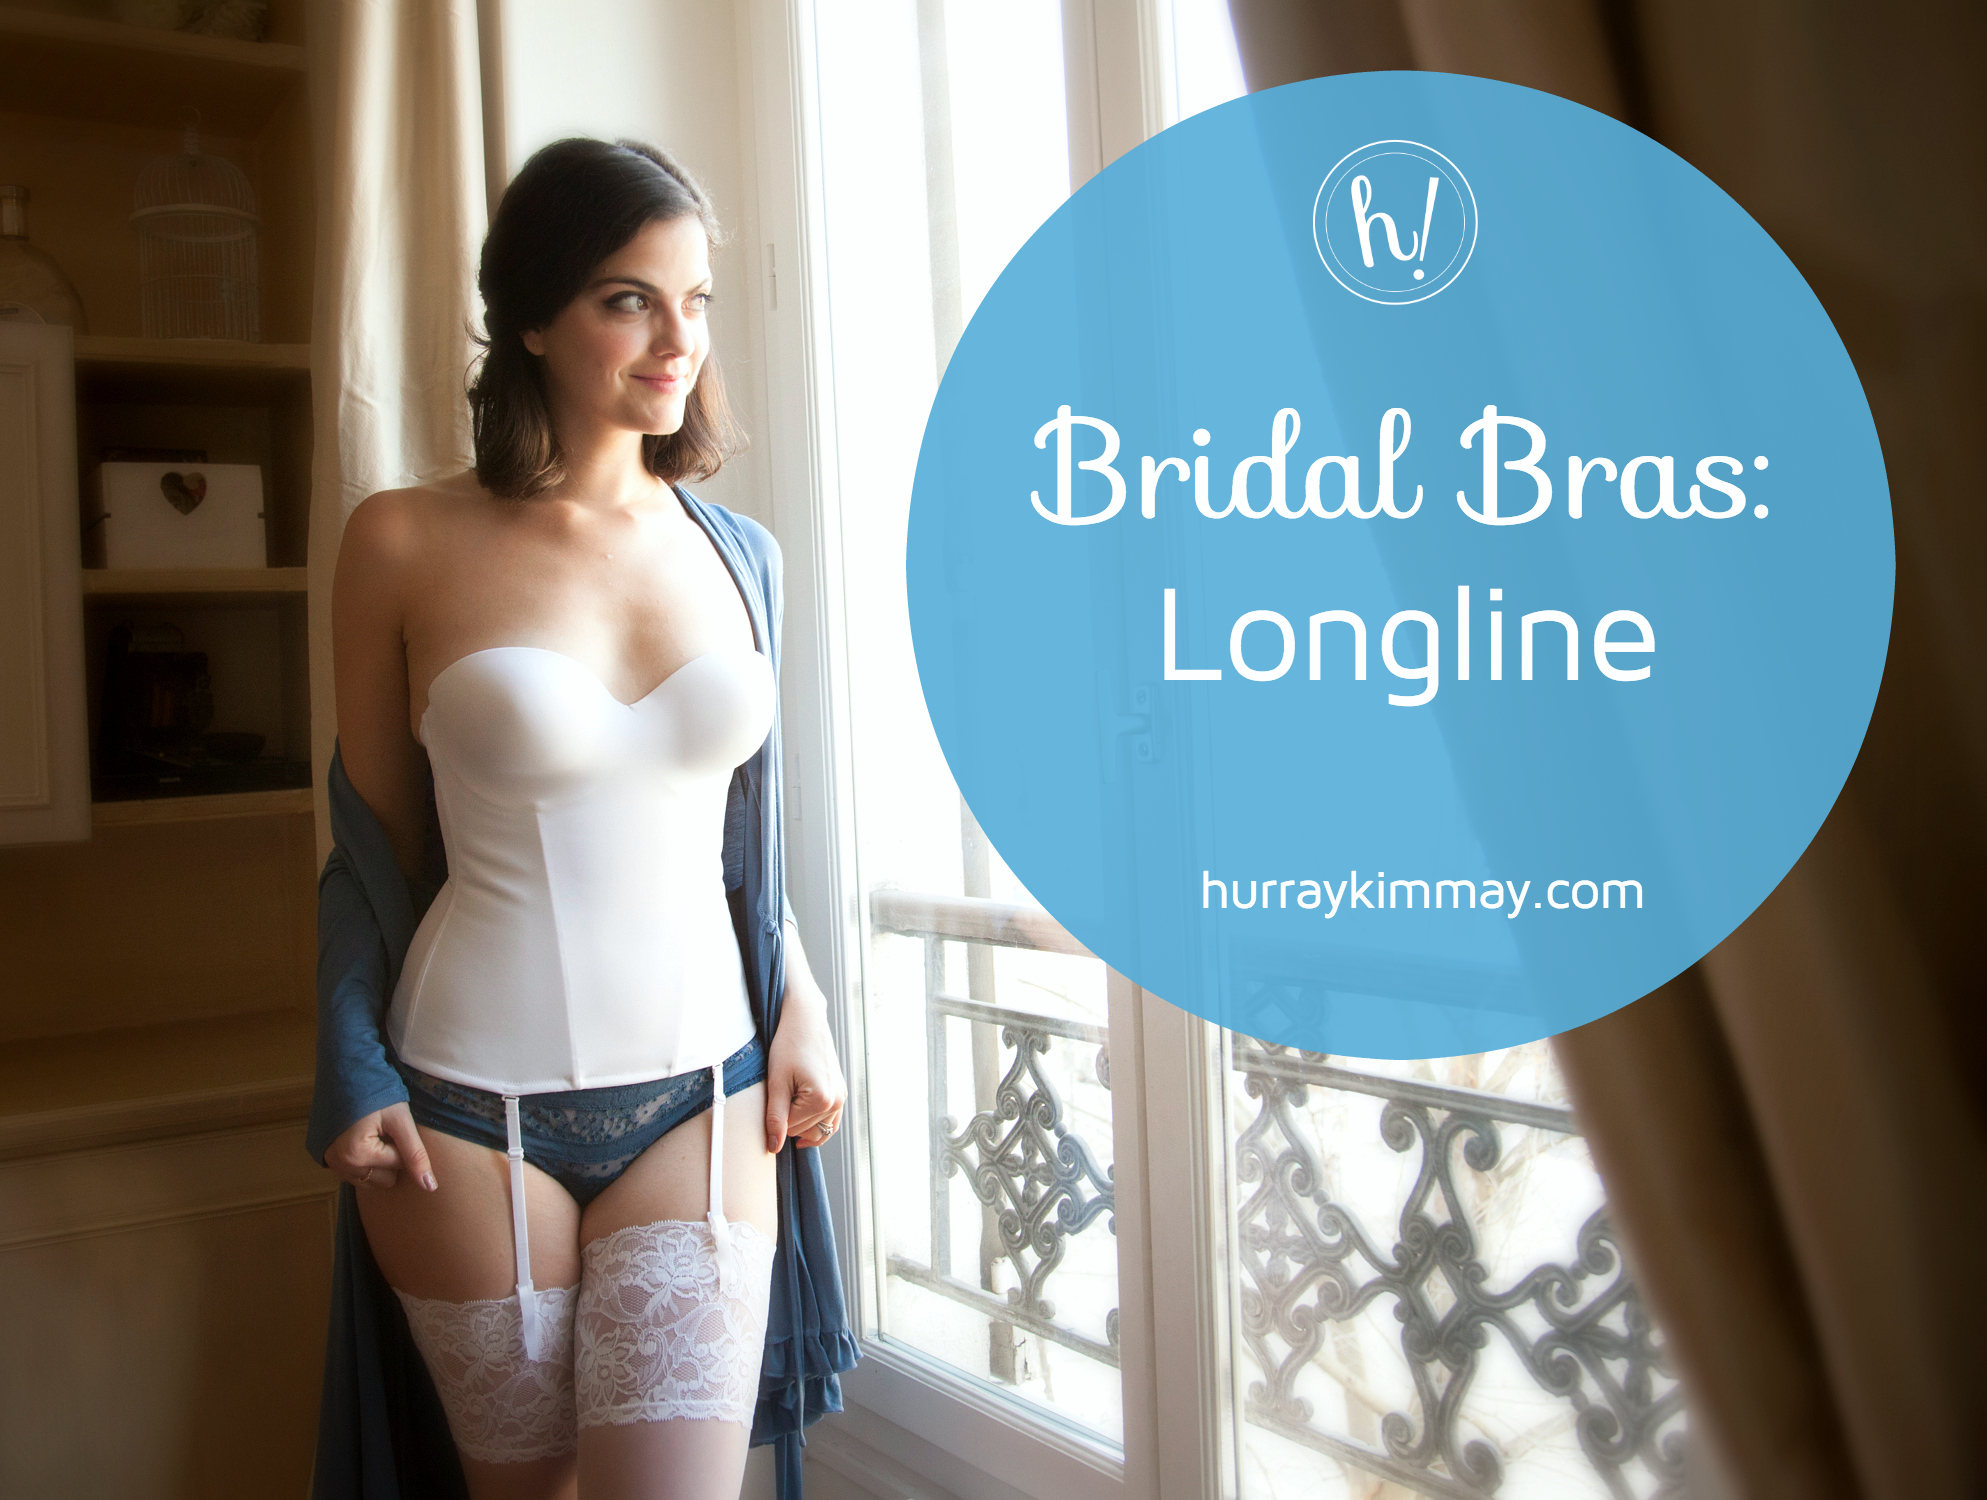 Kimmay explains Bridal Bras: Longline style on the Hurray Kimmay Blog